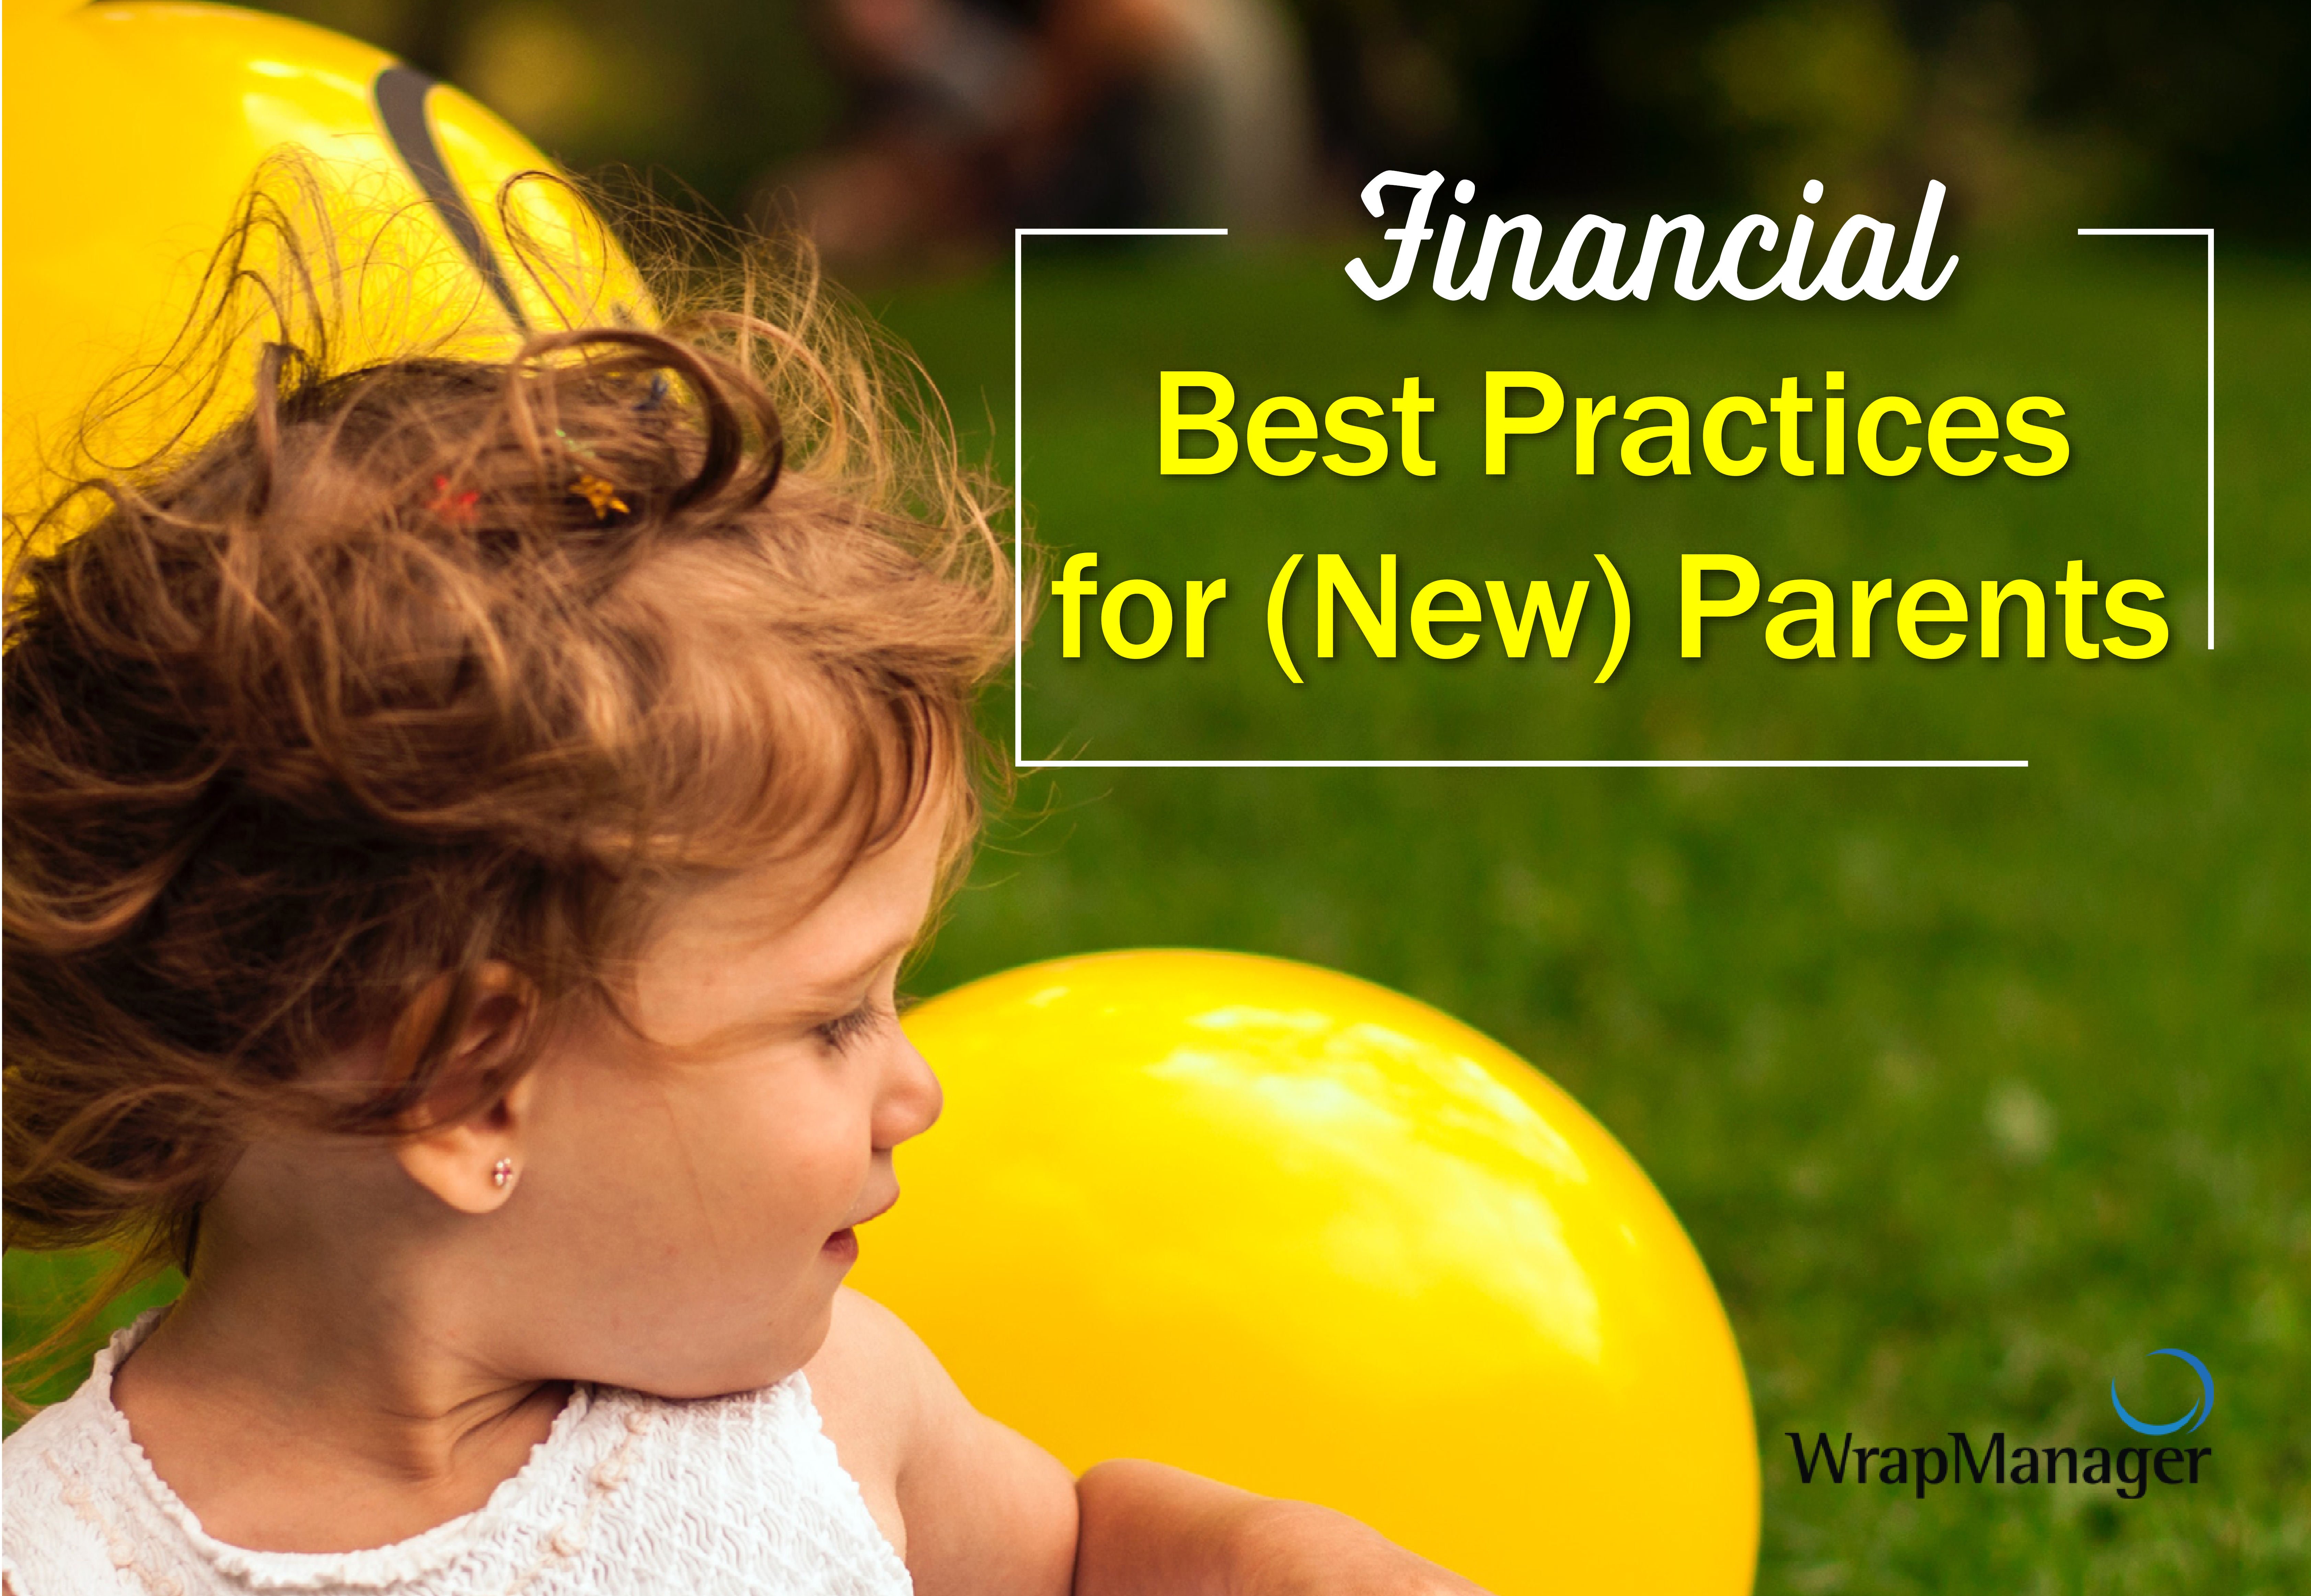 Financial Best Practices for Parents